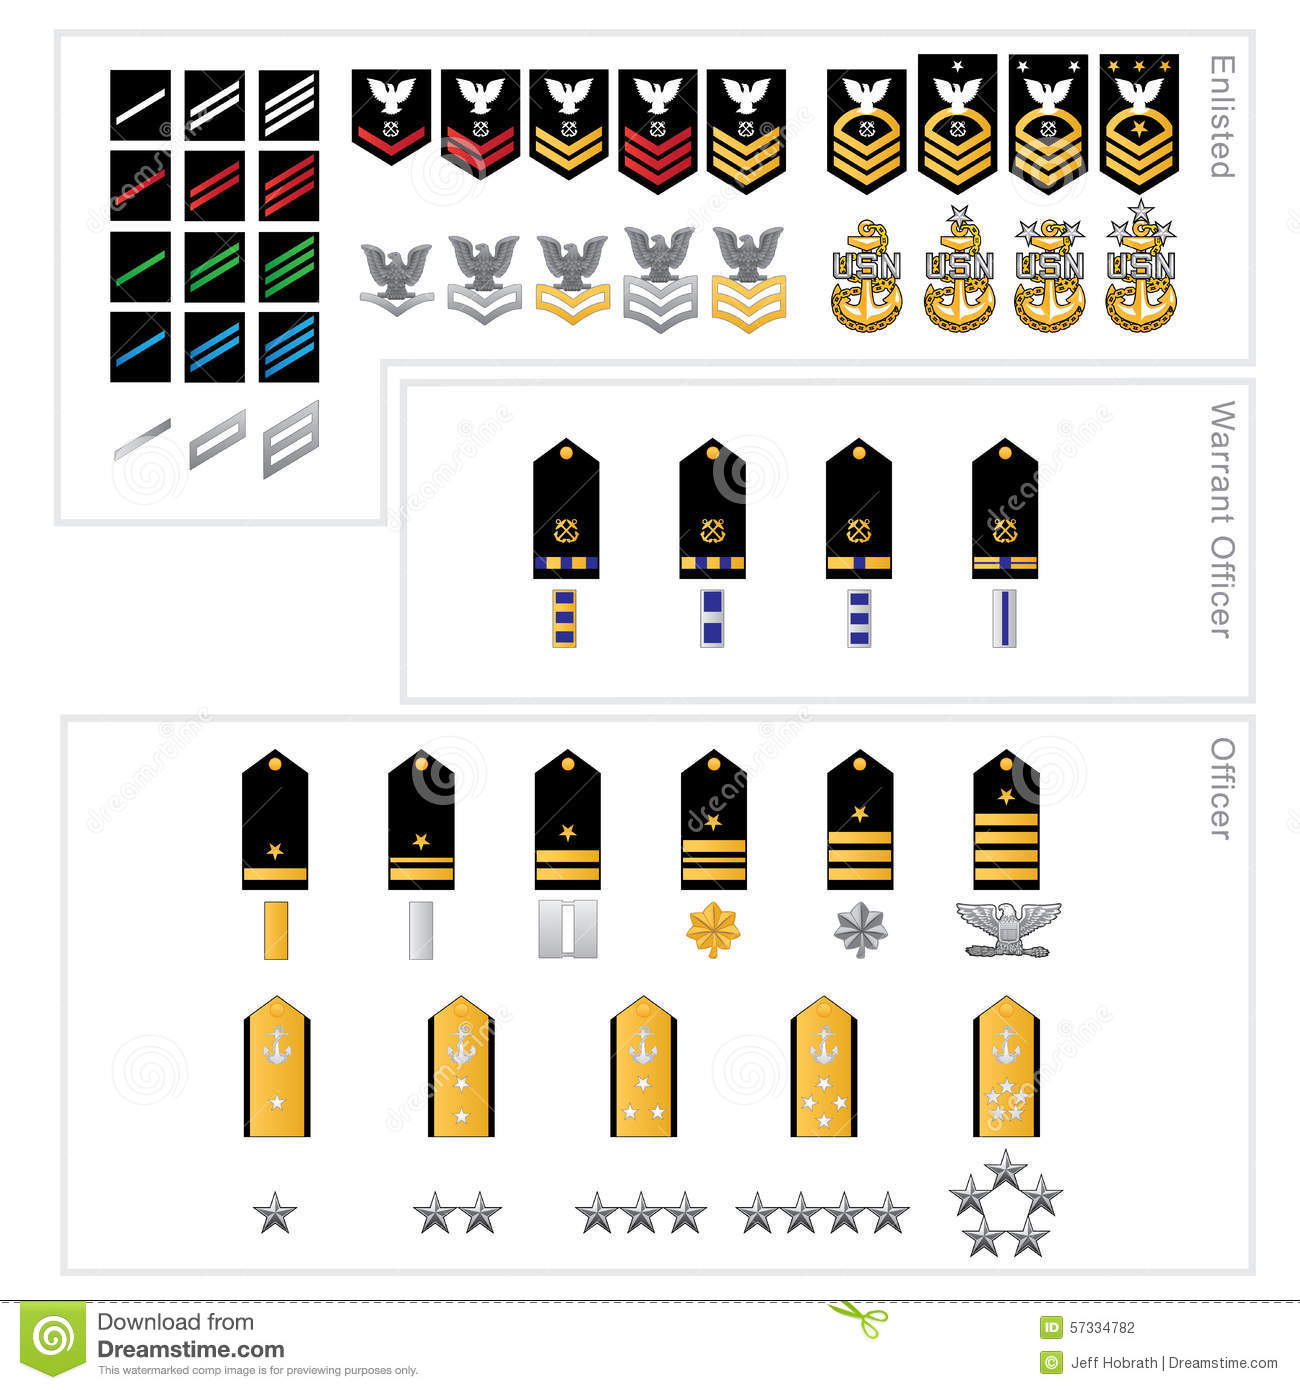 Naval rank rating insignia for Enlisted, Warrant Officers and Officers ...